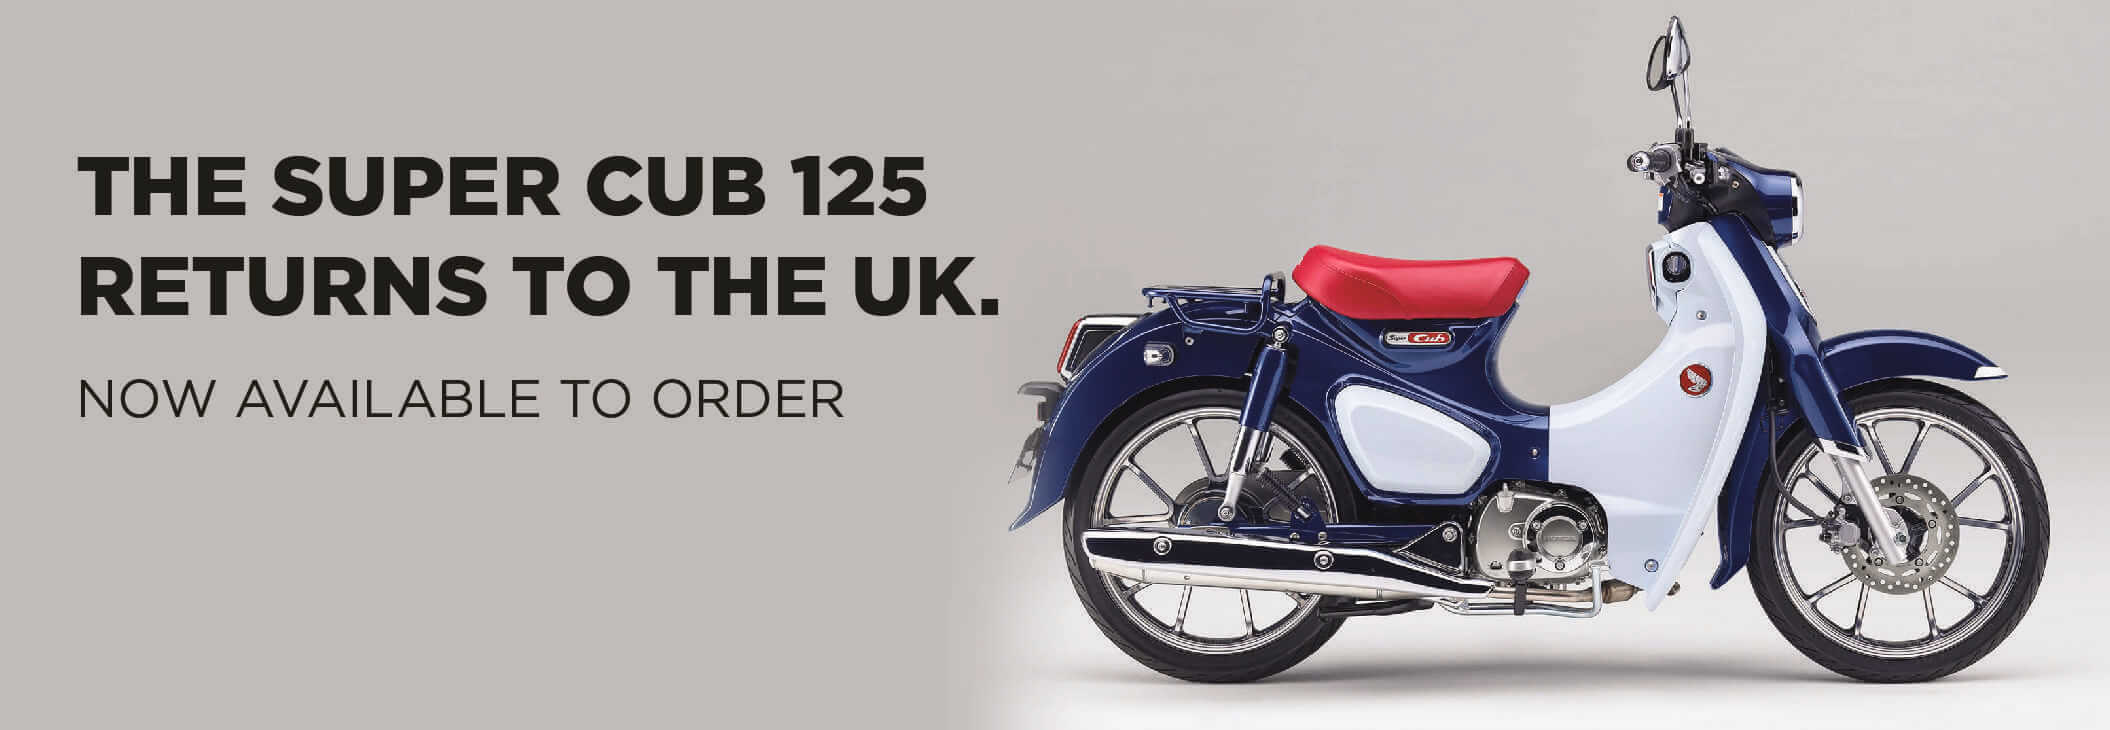 NEW HONDA SUPER CUB